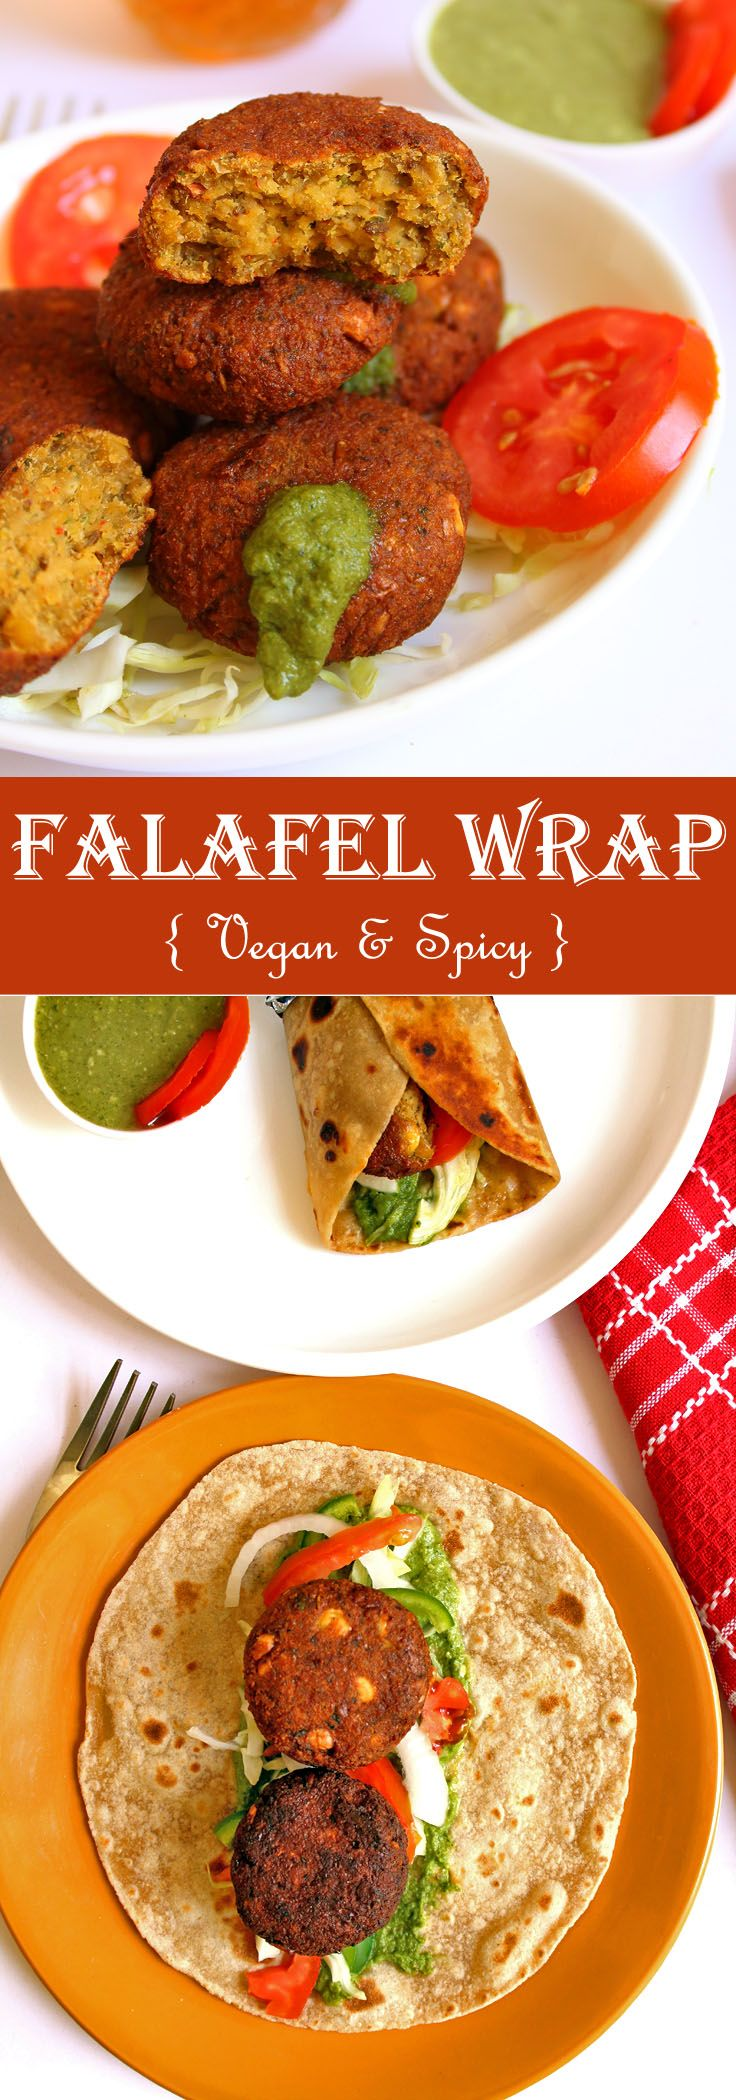 This Spicy Vegan Falafel Wrap is an Indian version of very famous middle eastern street food falafel wrap.